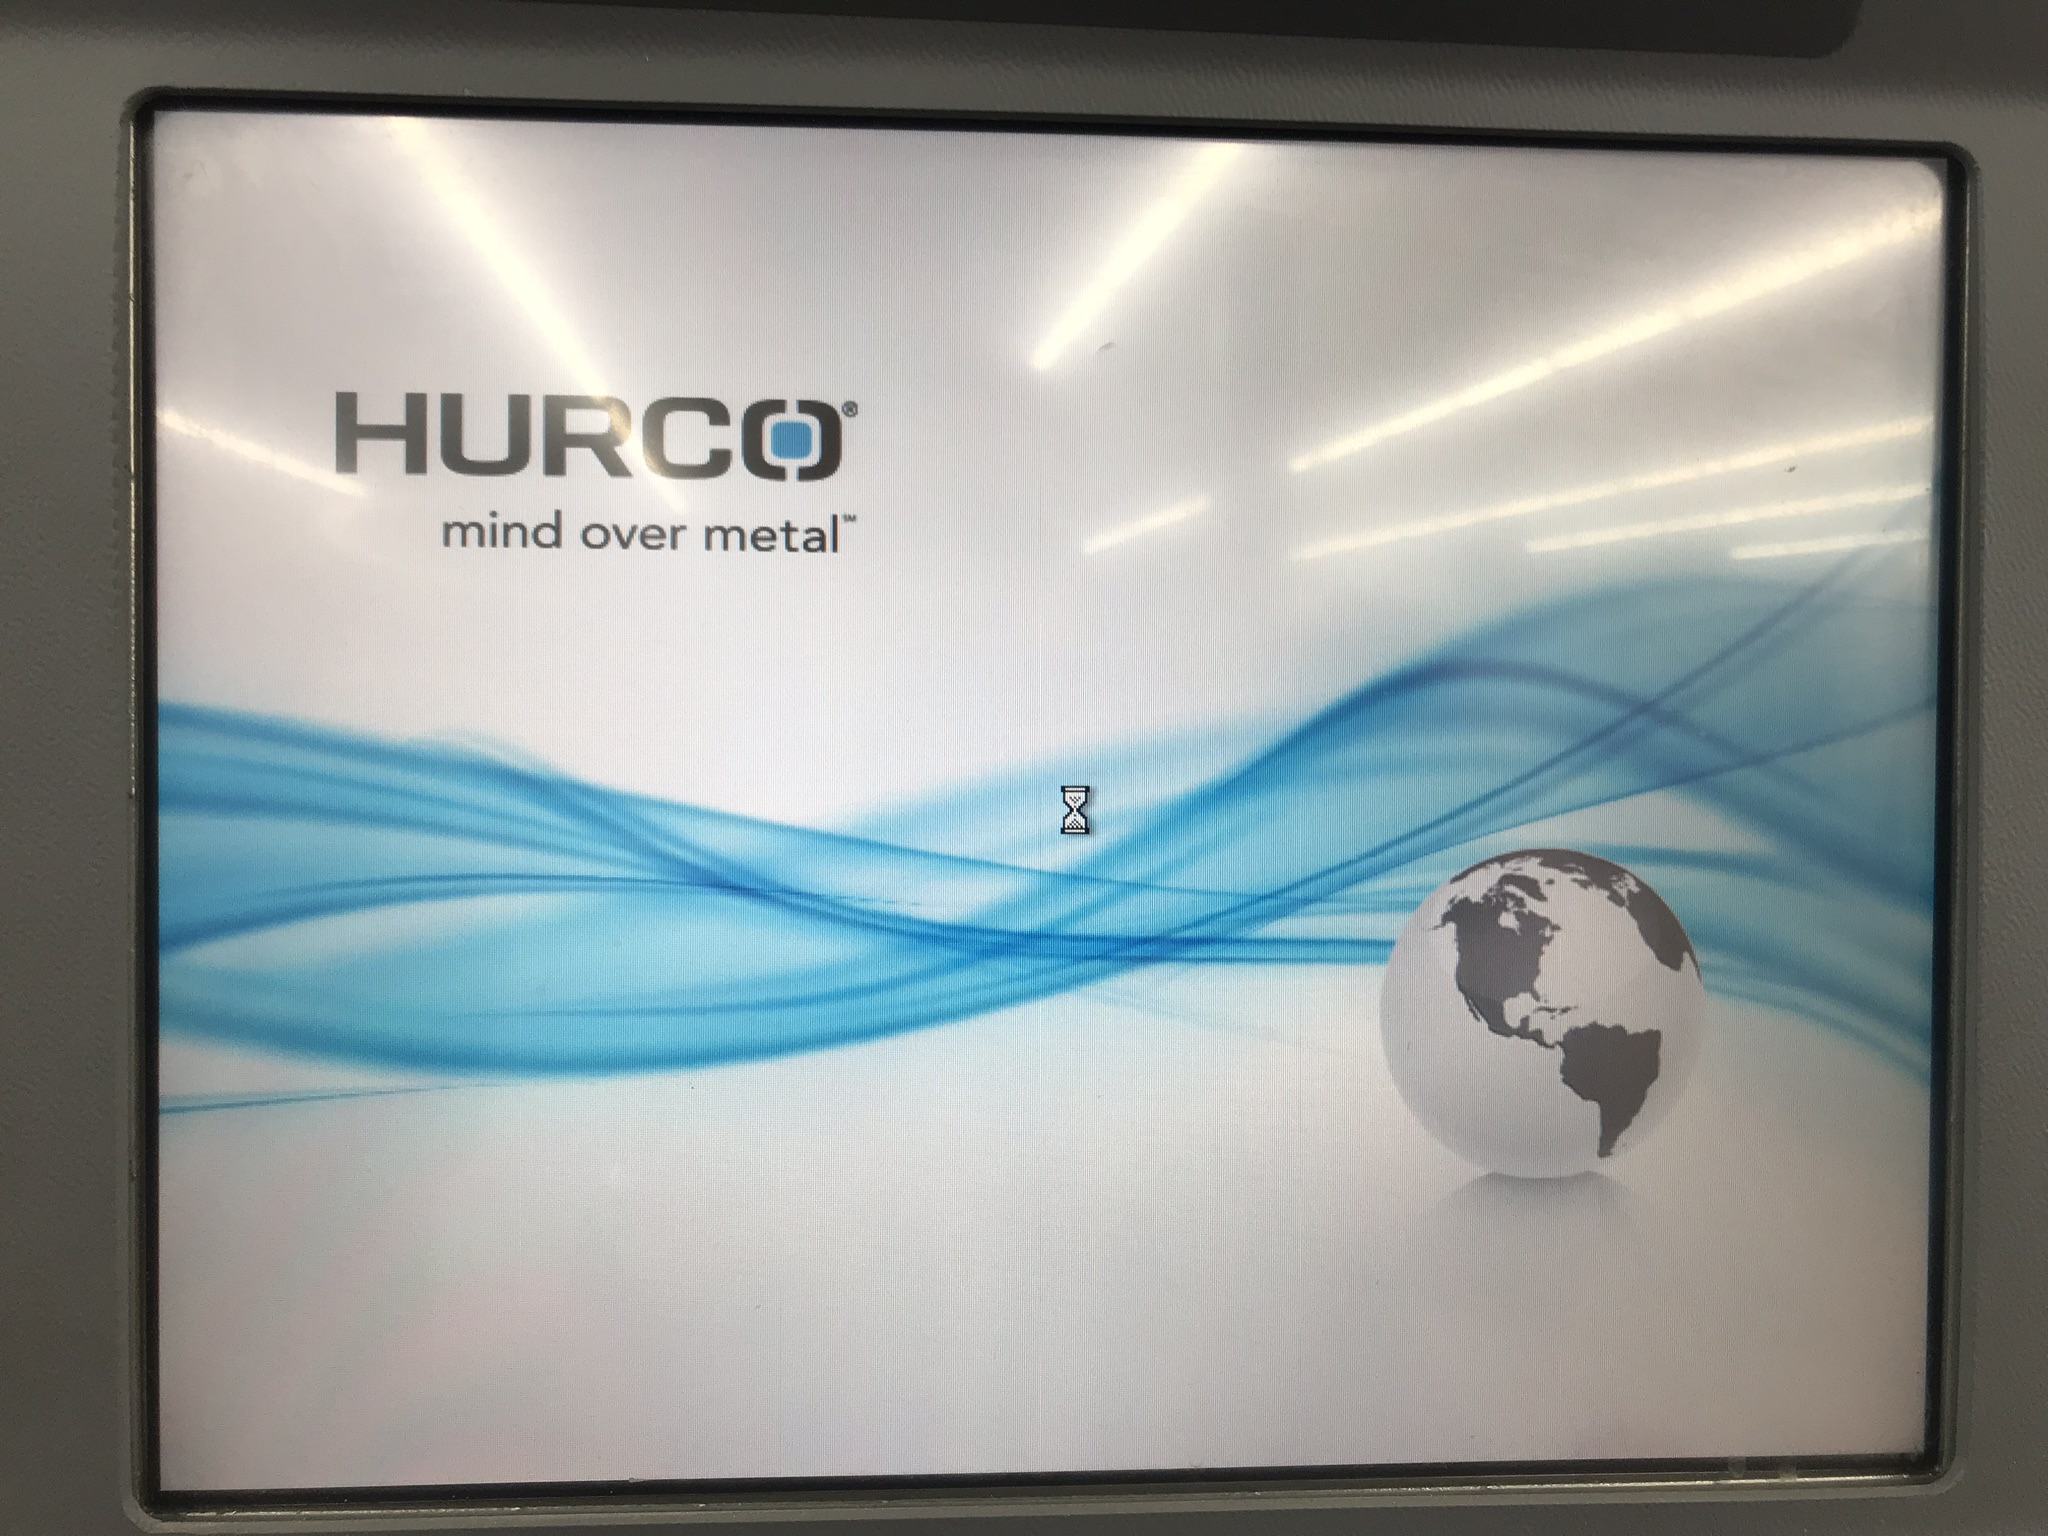 Hurco TM-6i CNC Lathe with HB65-1.2 Barfeed, Rigid Tap, Renishaw Presetter, Chip Conv, 400 Hours! - Image 15 of 16